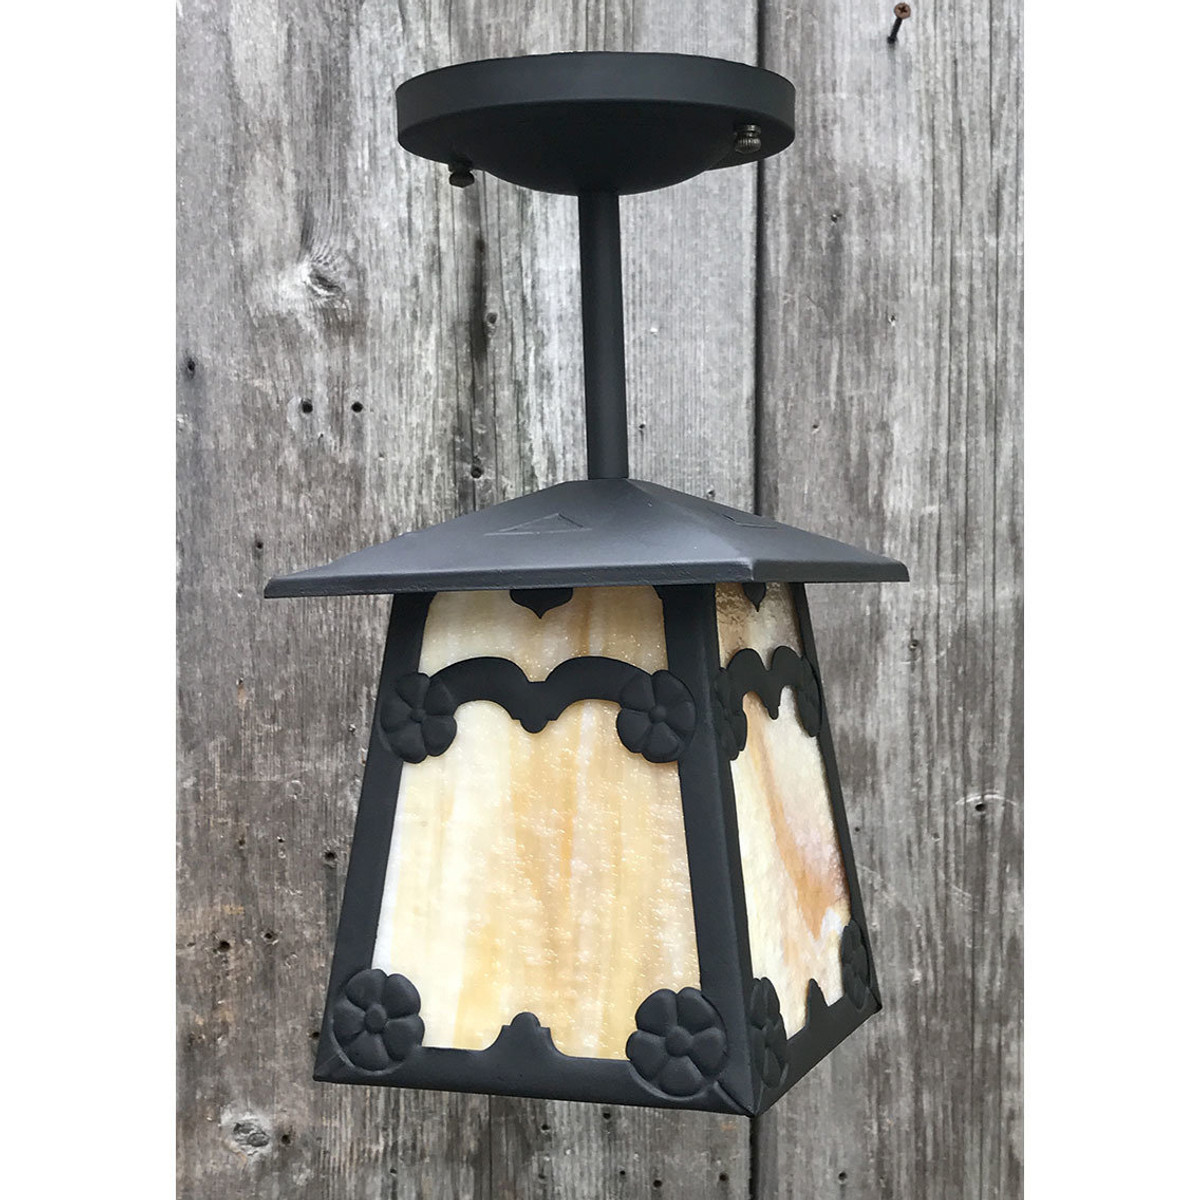 L17145 - Antique Exterior Light Fixture